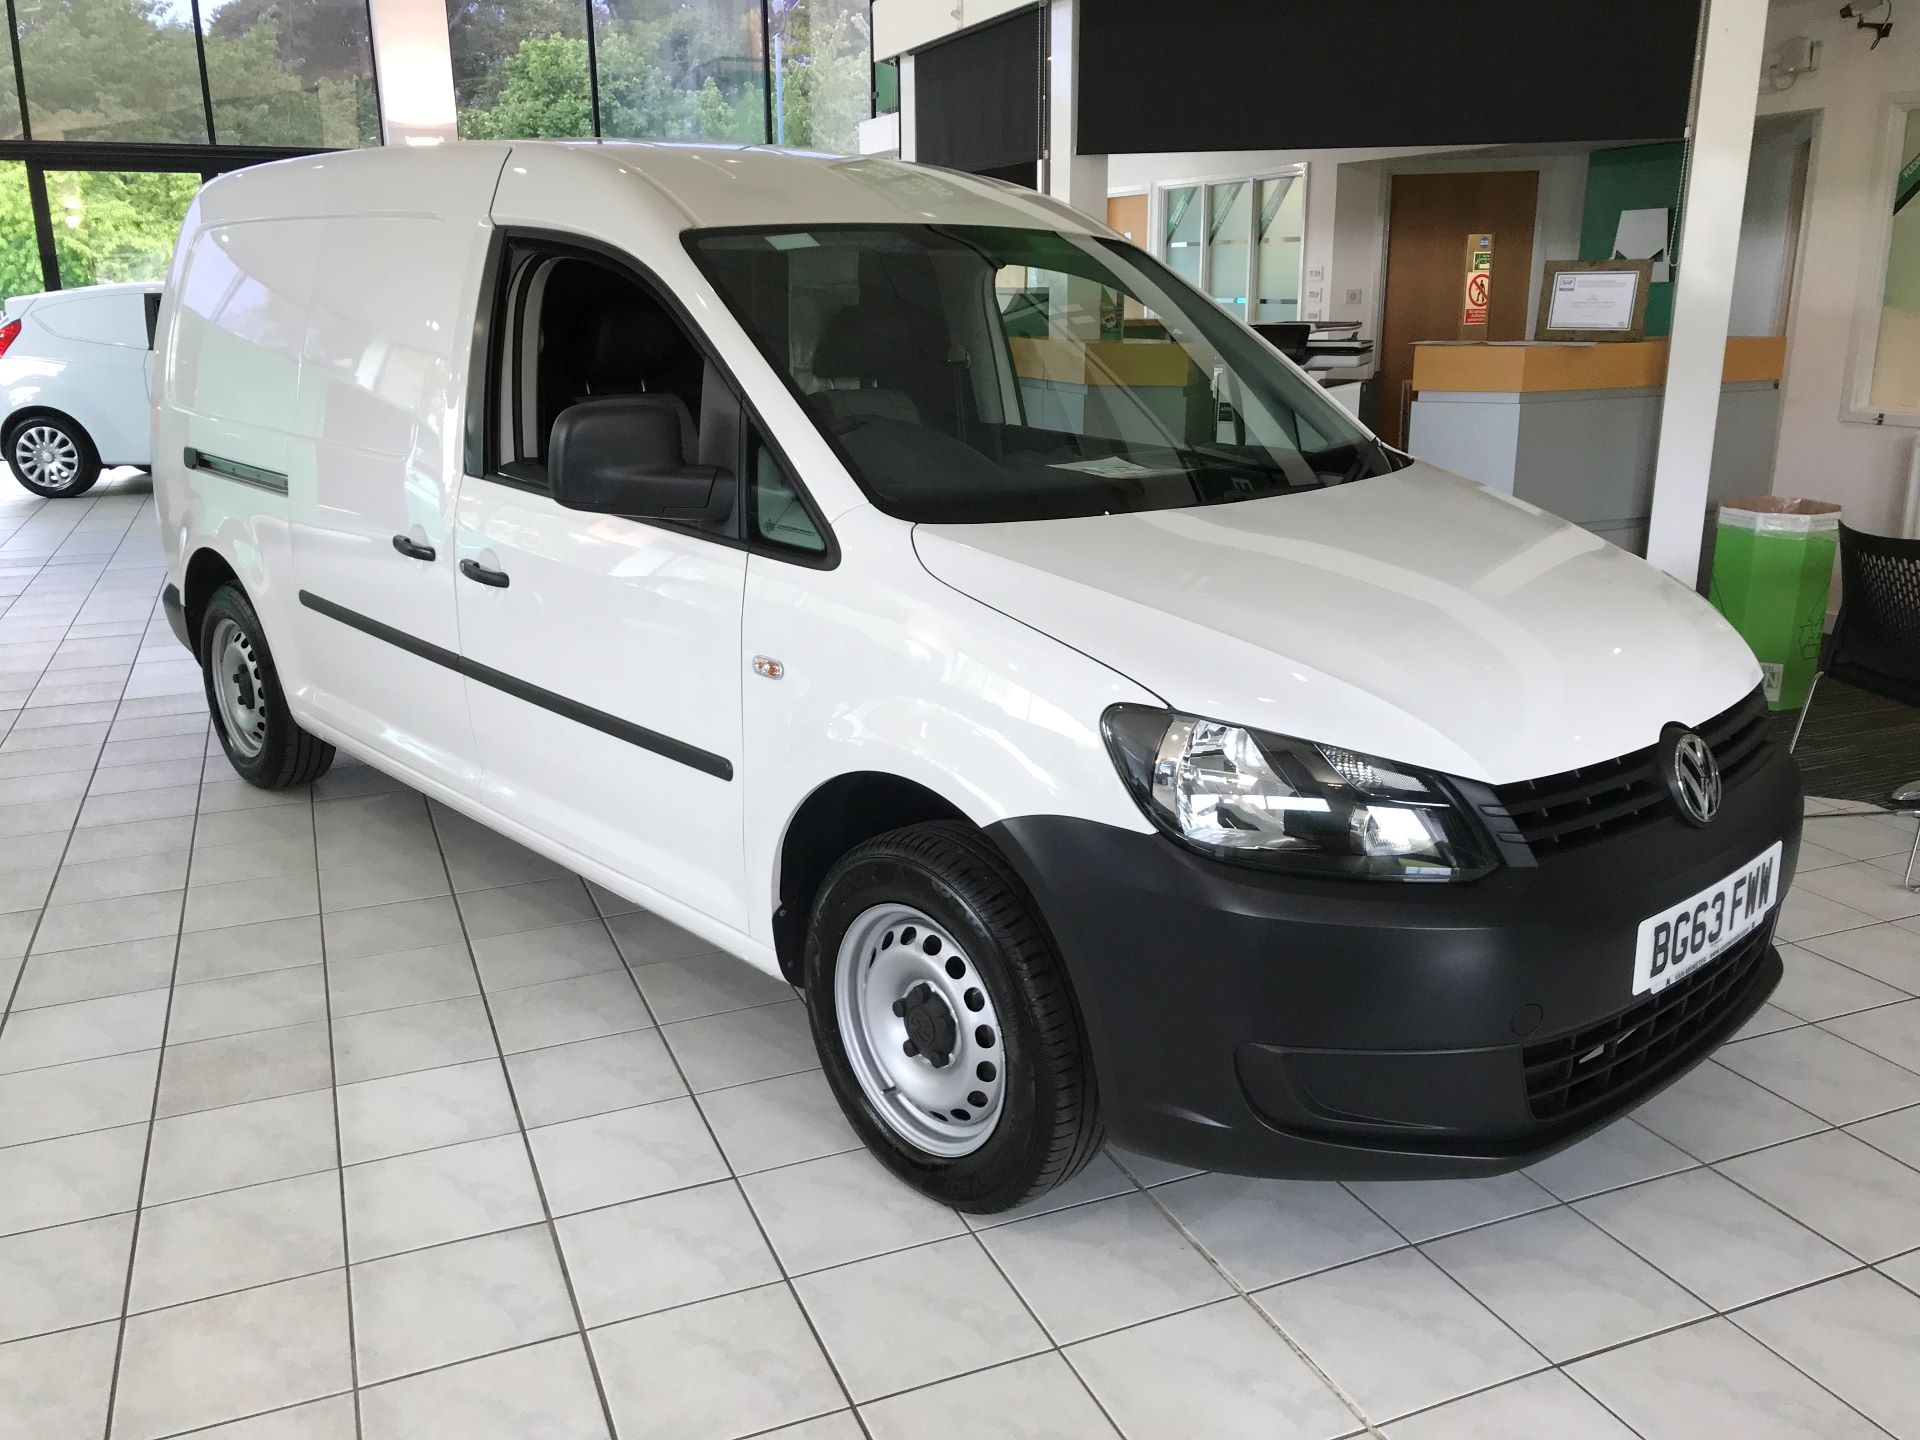 2014 Volkswagen Caddy Maxi 2.0 102PS BLUEMOTION TECH 102 STARTLINE  *VALUE RANGE VEHICLE CONDITION REFLECTED IN PRICE*